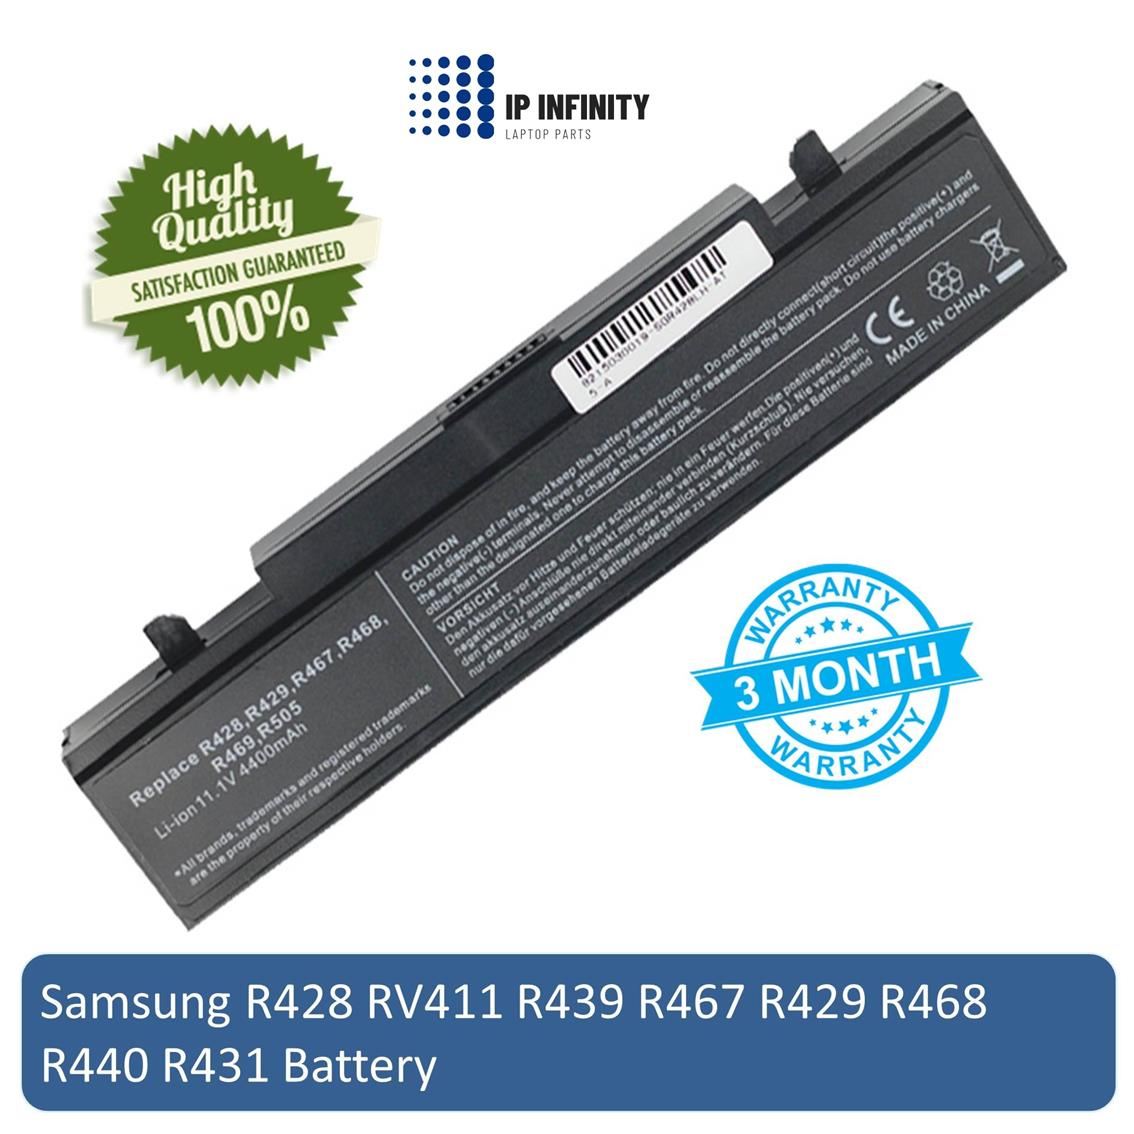 Samsung X65 T7500 R560 R408 RC730 210 Q310 Q318 Laptop Battery